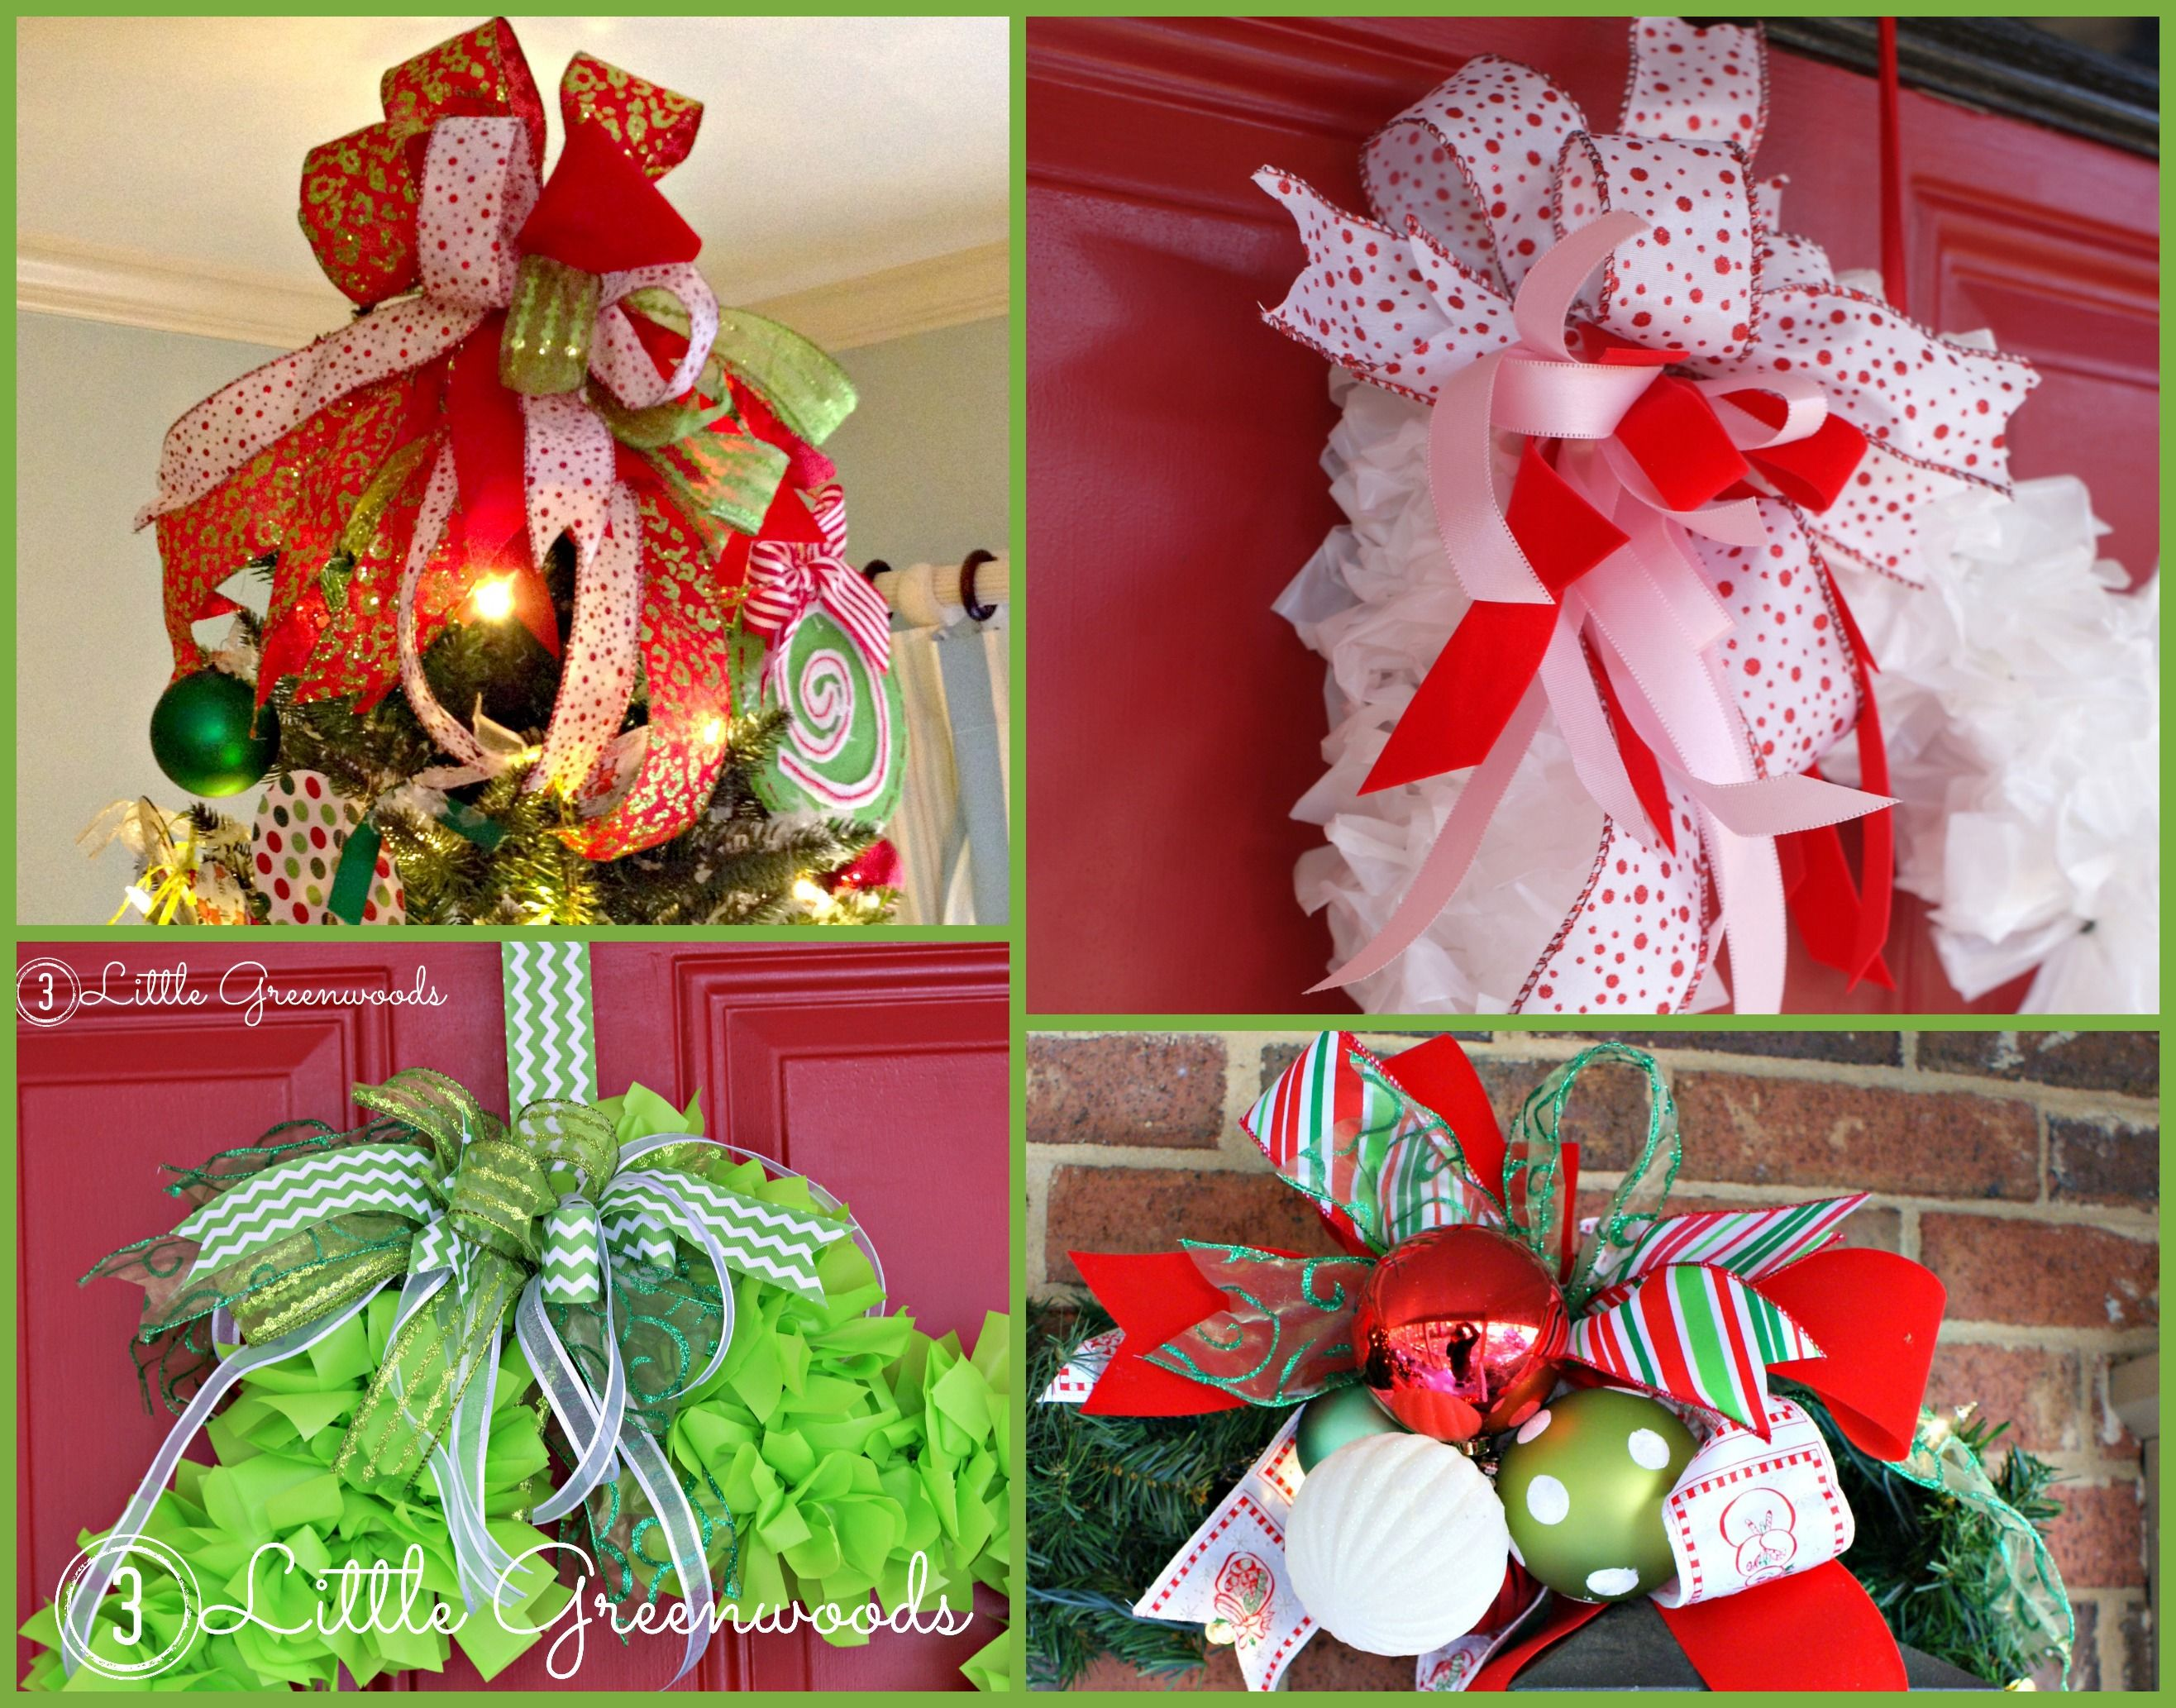 How to Make an Easy Bow for Wreaths and Door Hangers